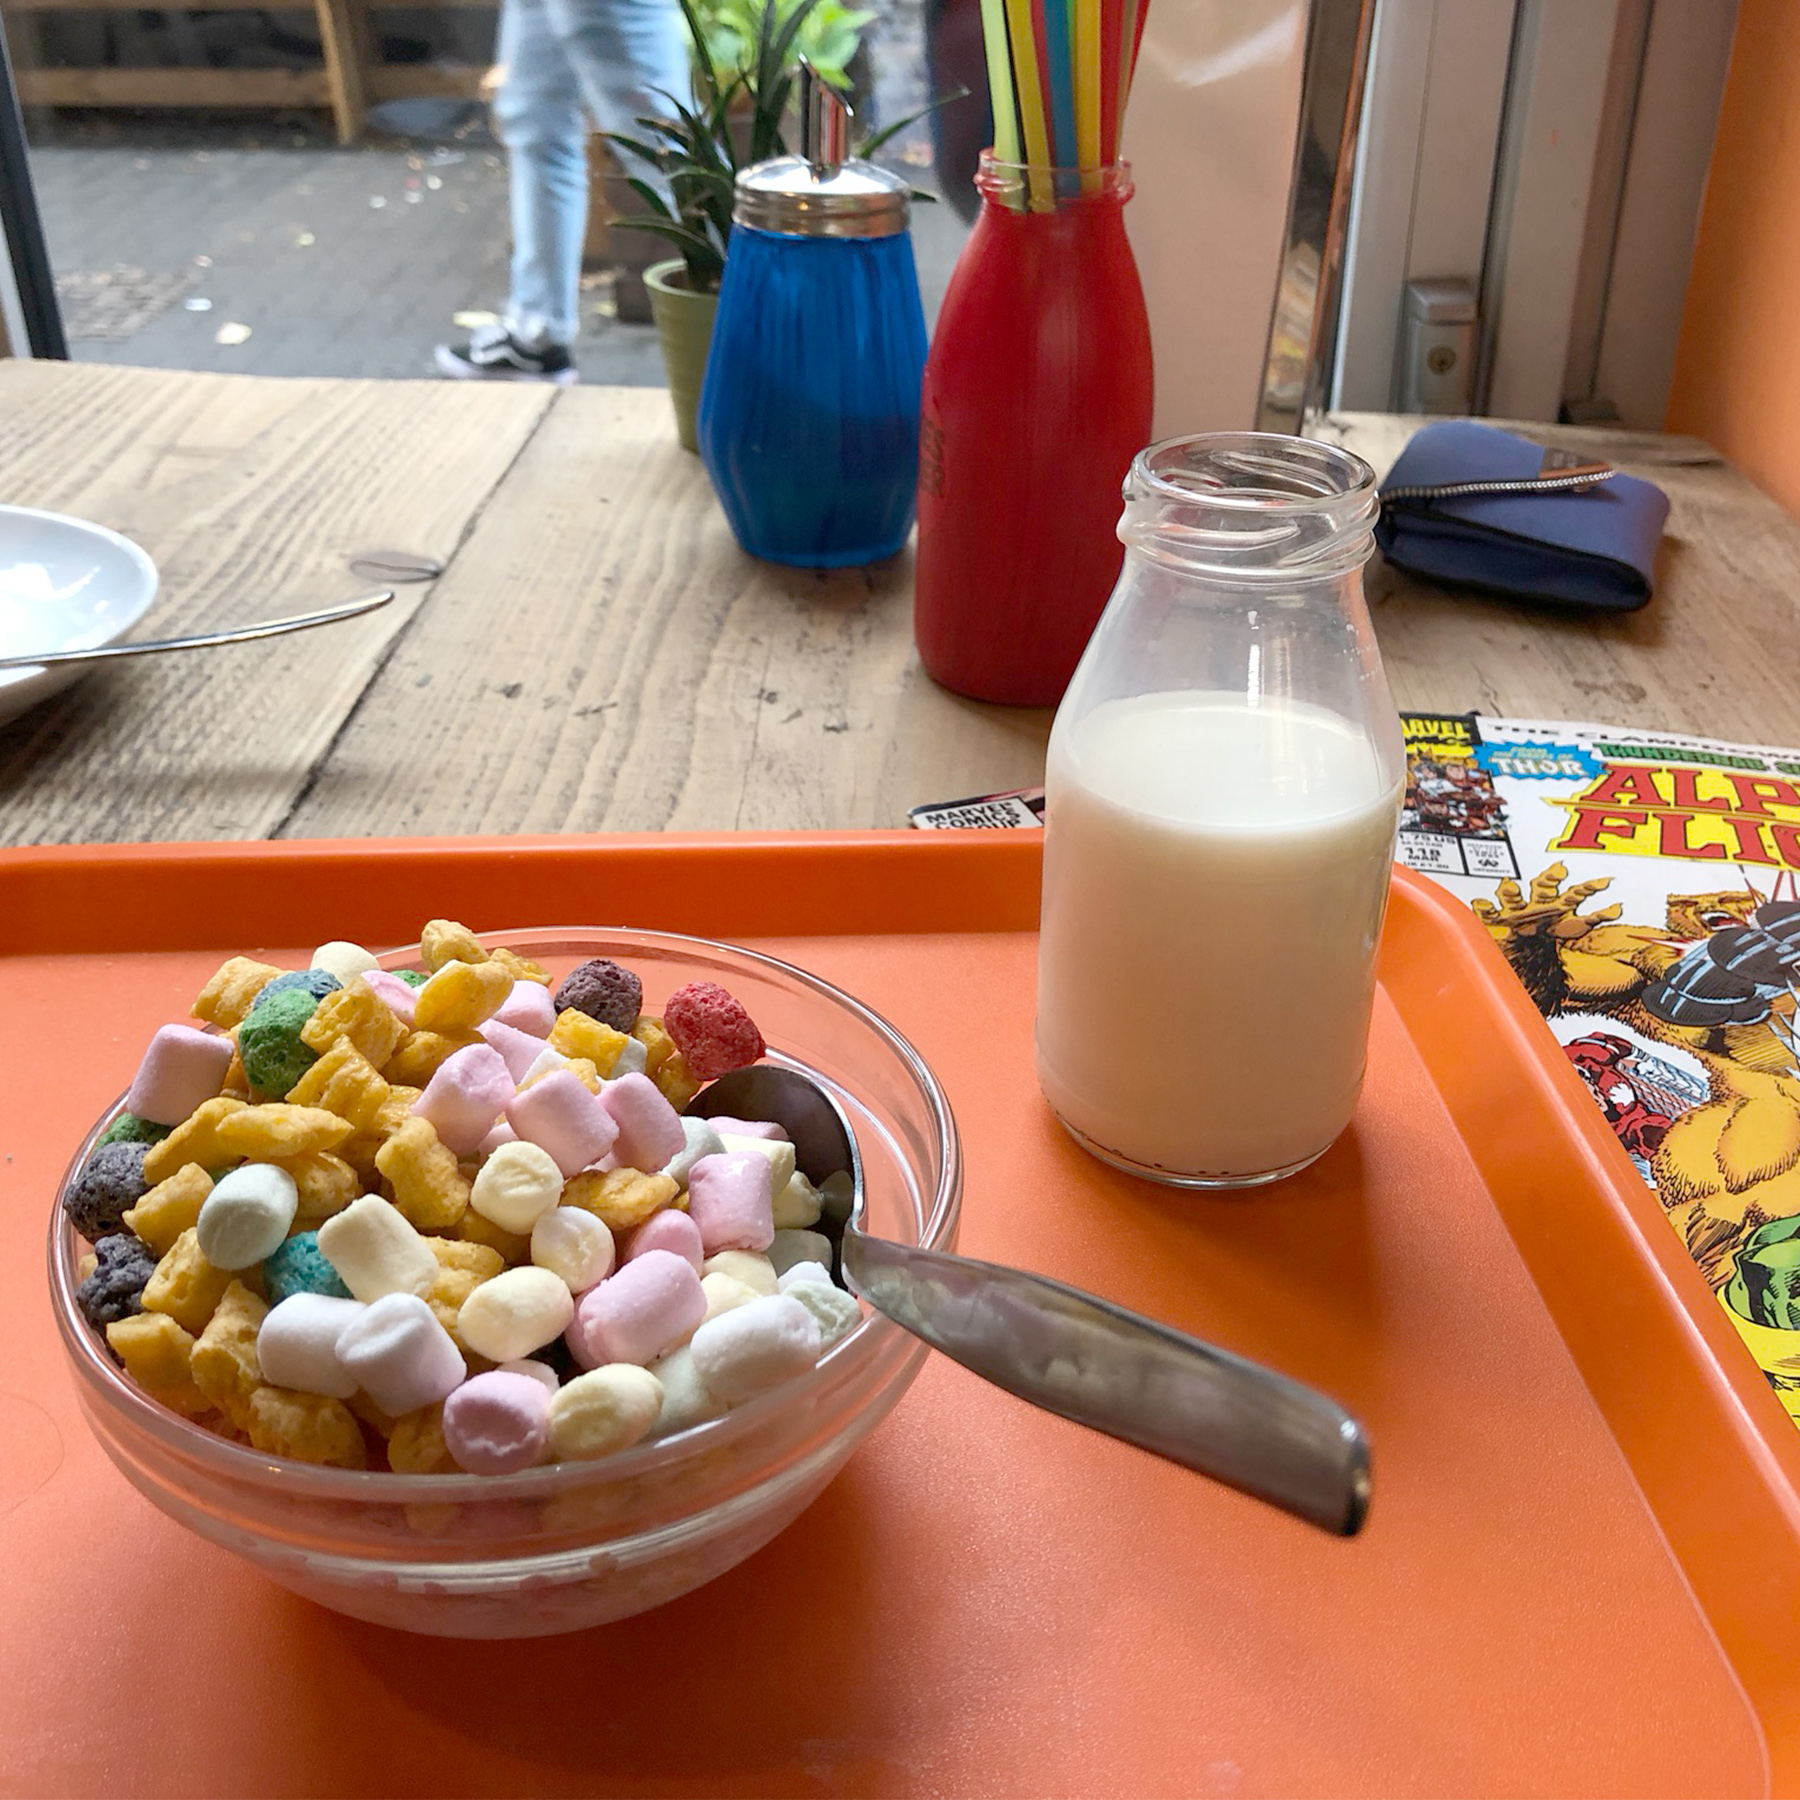 Comics and cereal, a classic combination